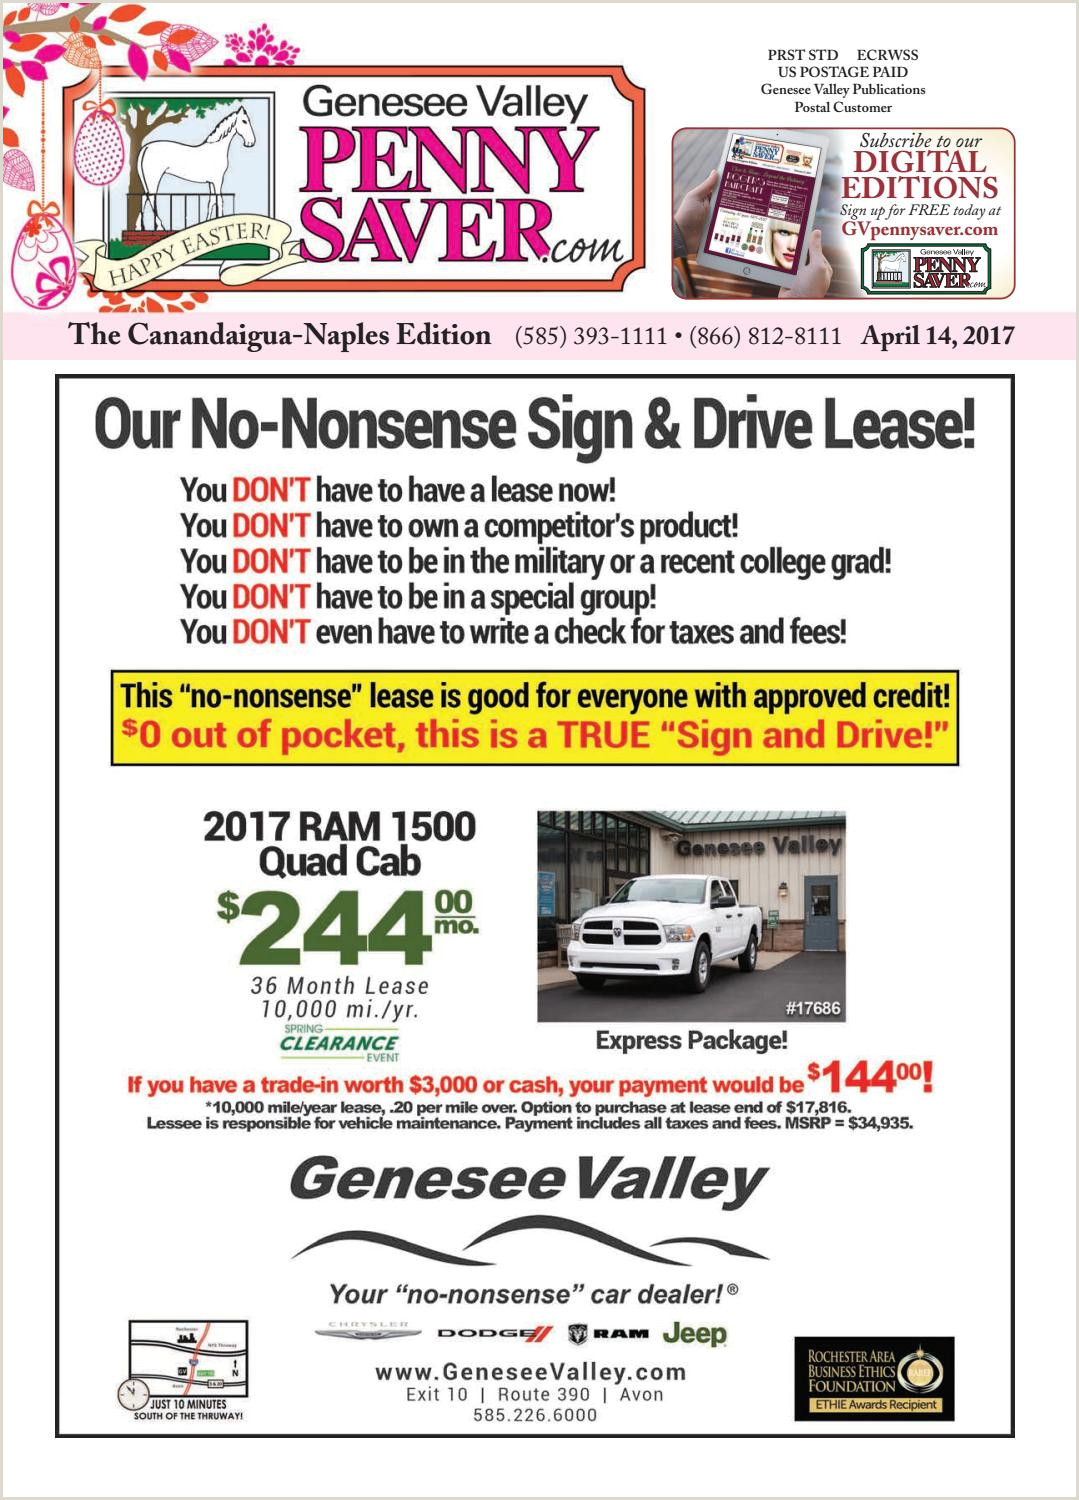 Floor Banners Retractable The Genesee Valley Penny Saver Canandaigua Naples Edition 4